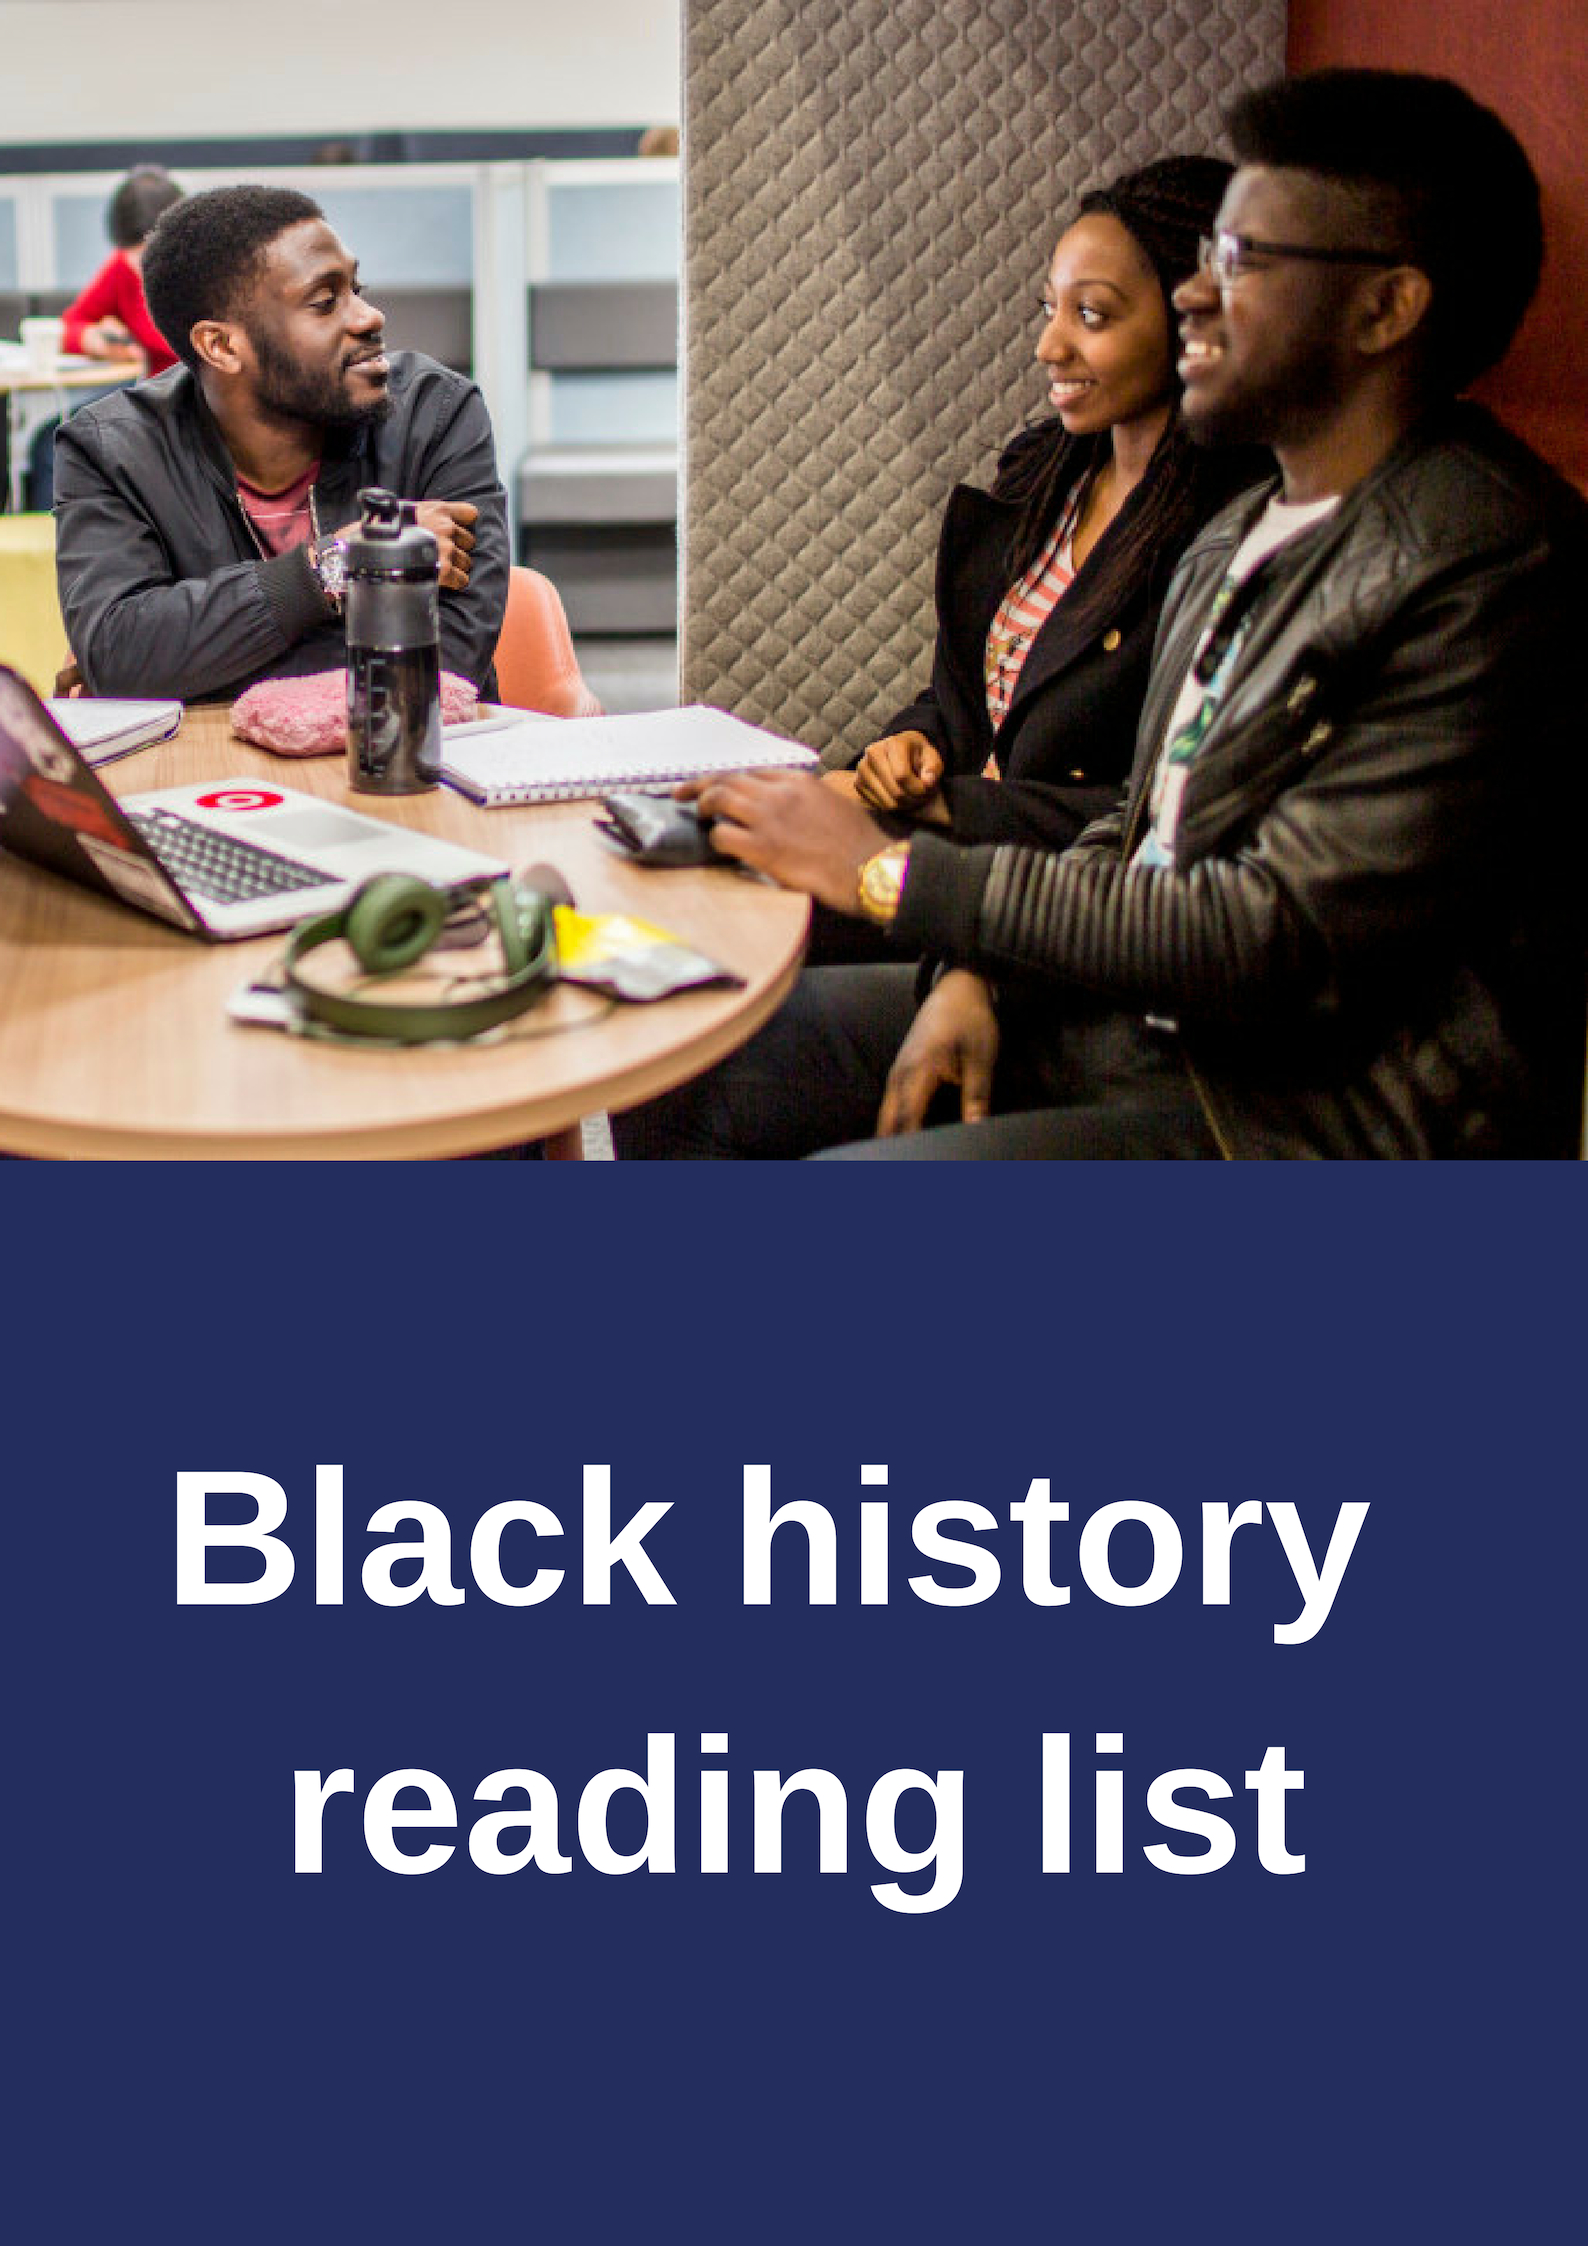 Black history reading list